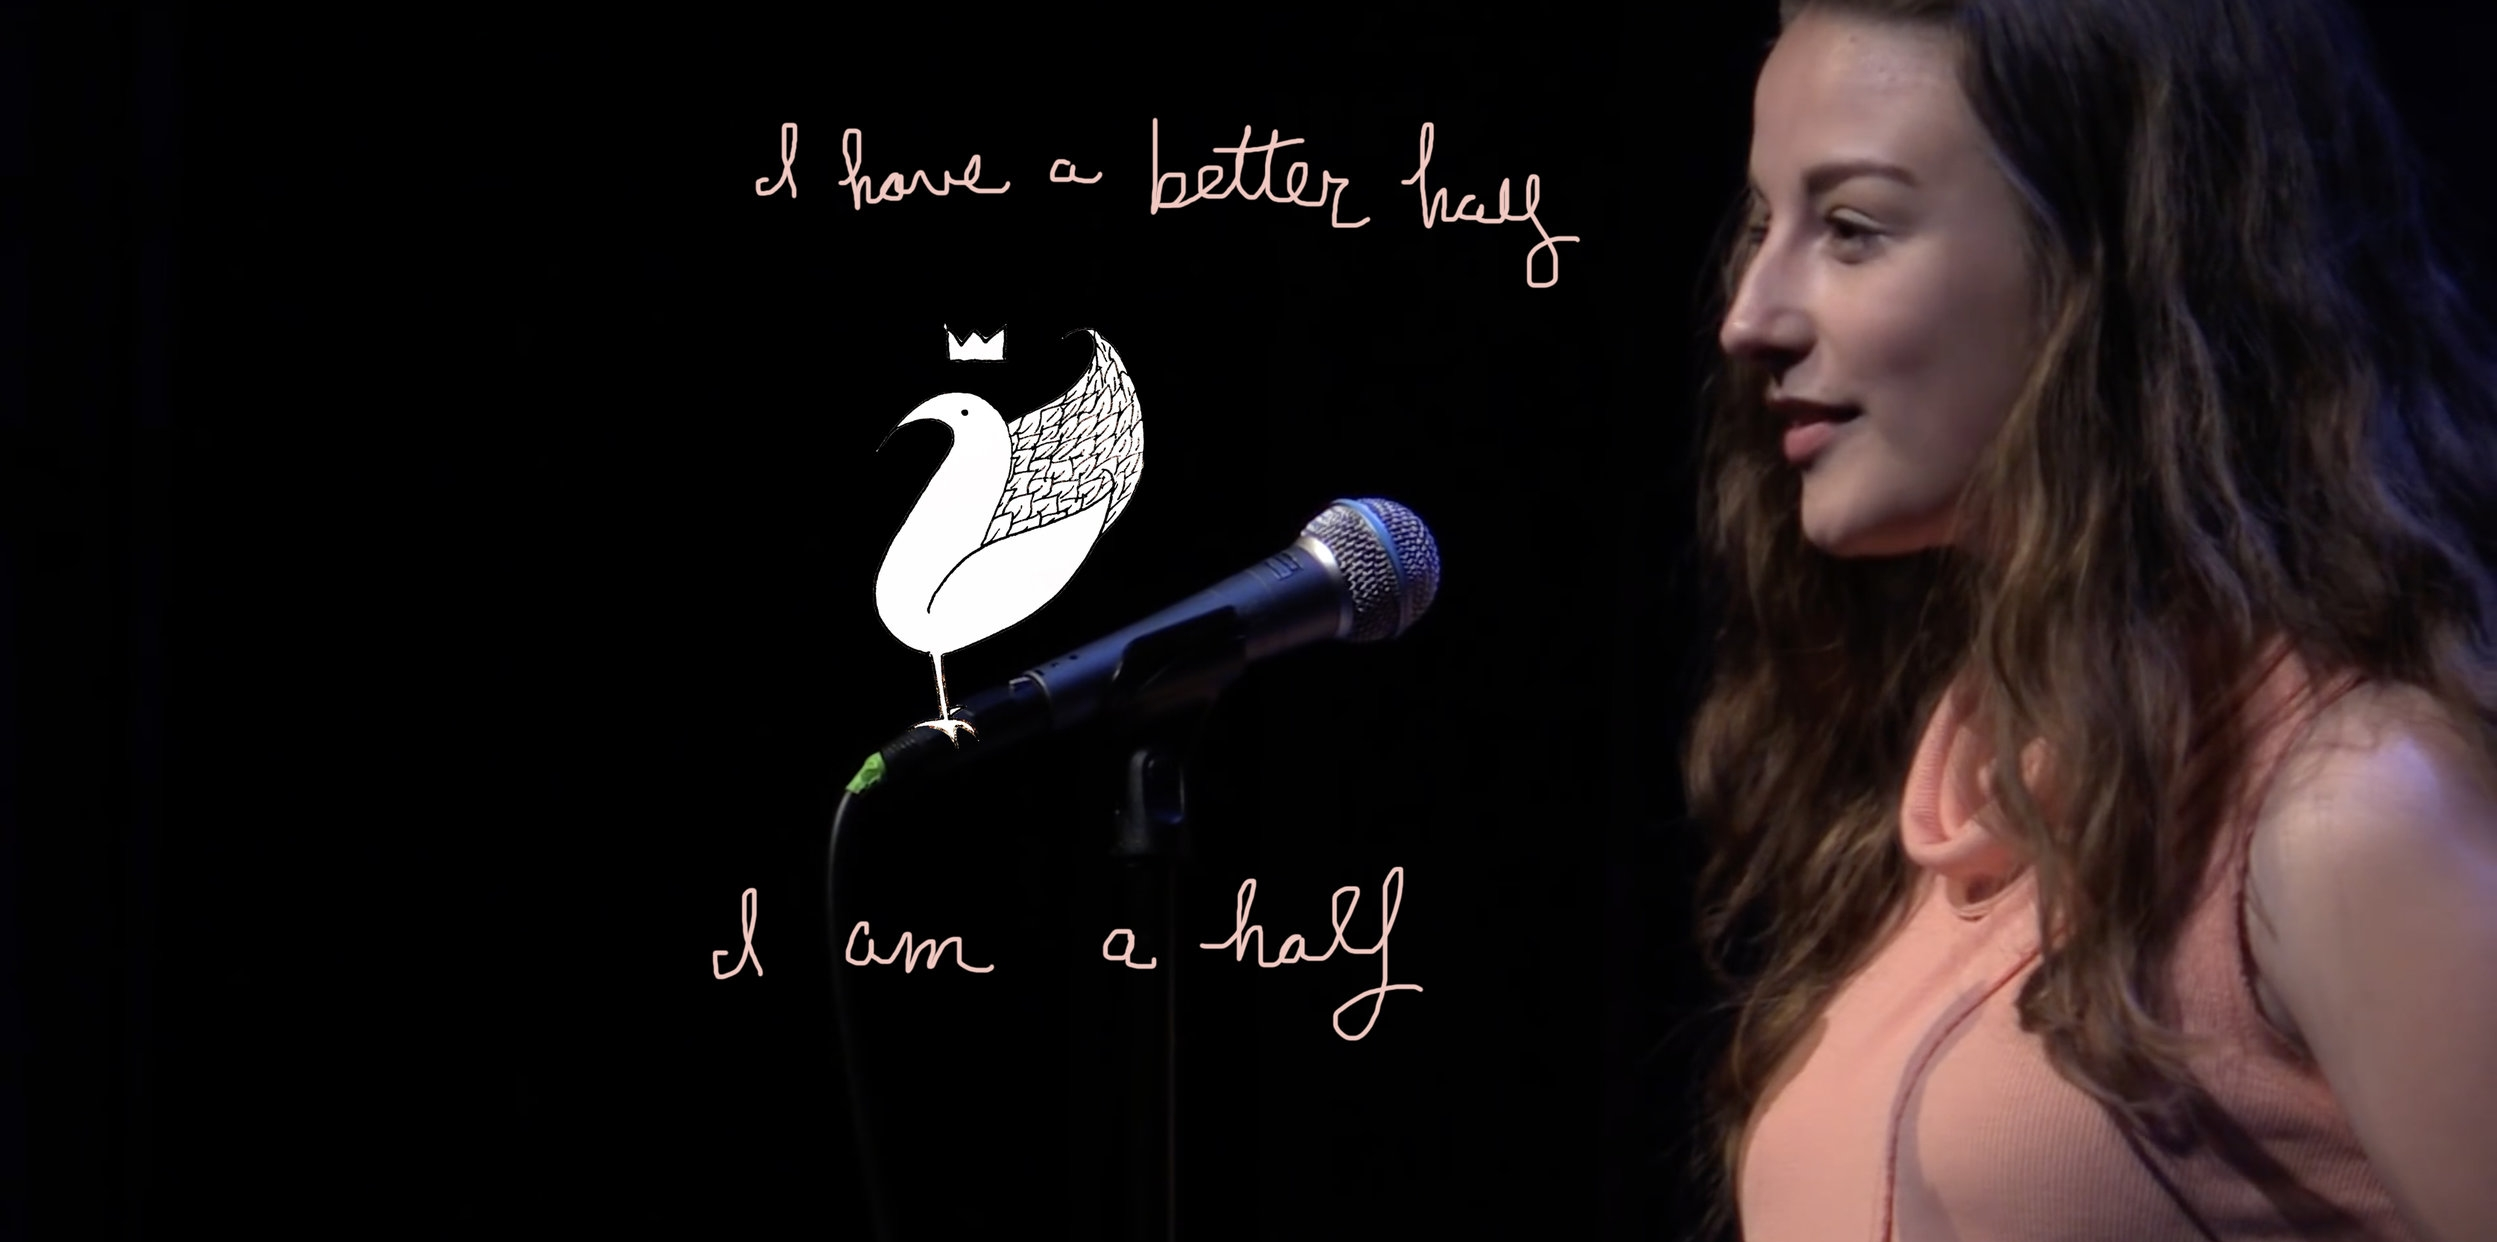 THE SONG OF THE PRETTYBIRD